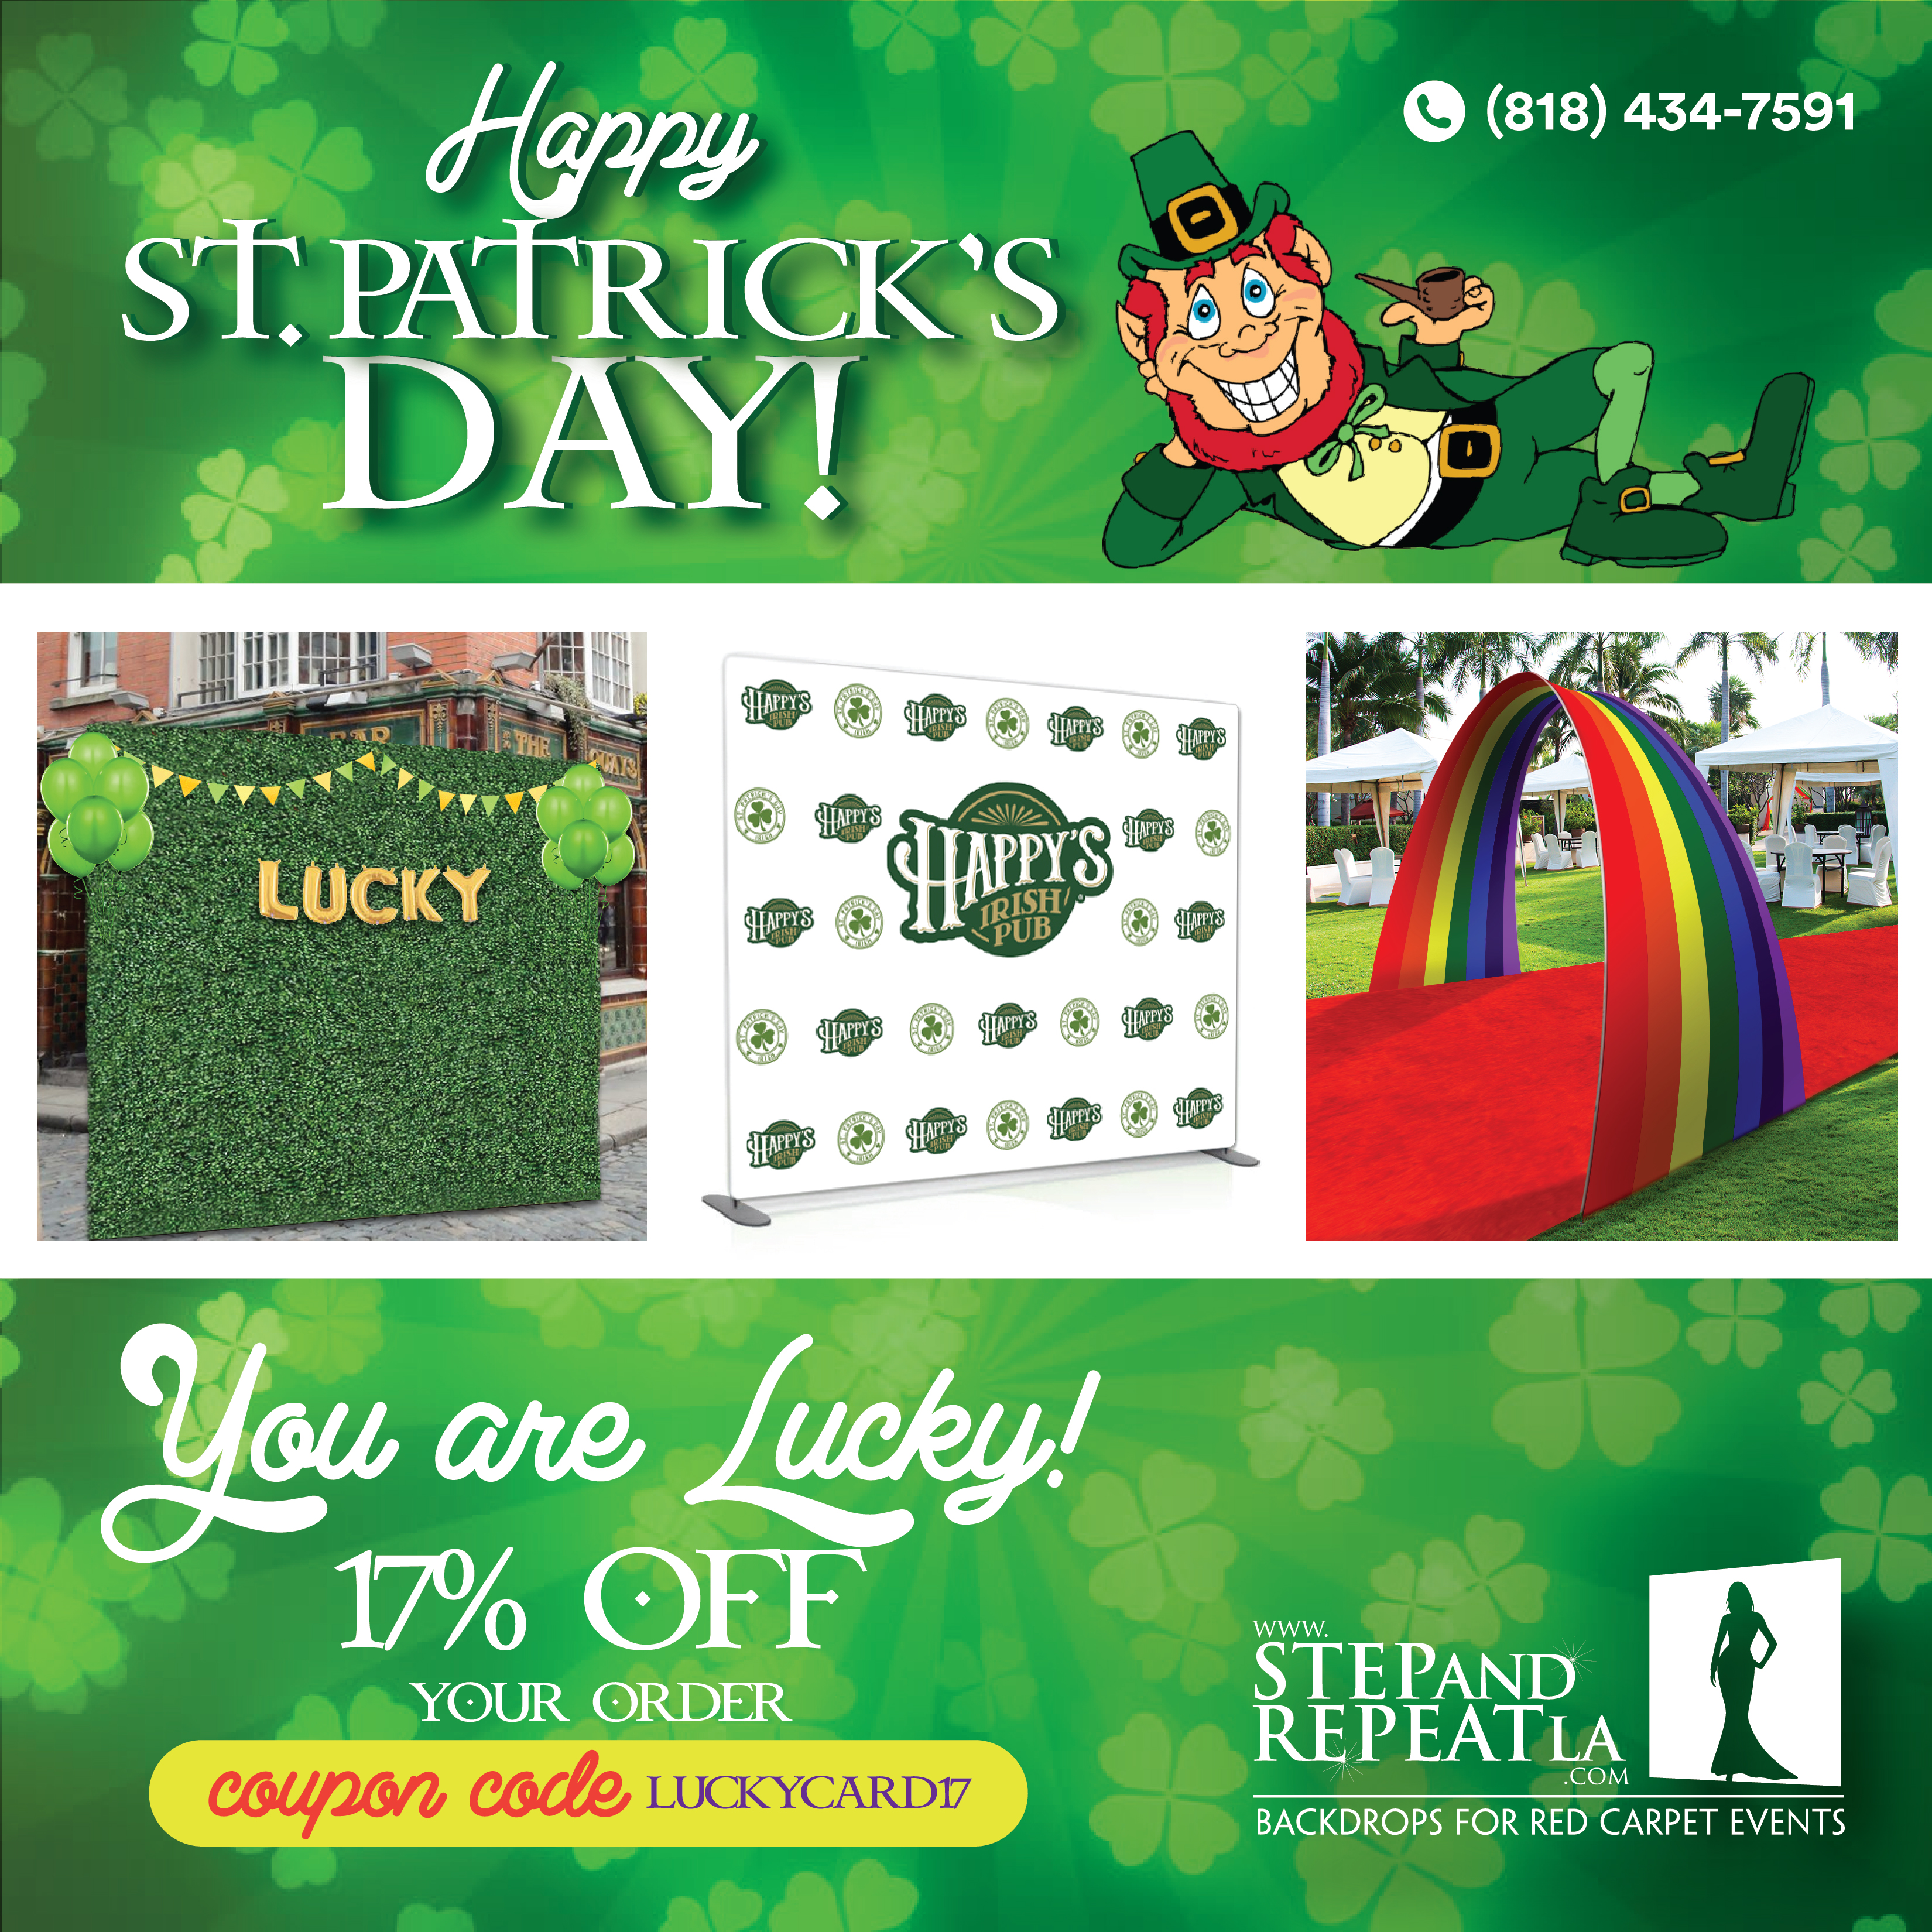 St. Patrick's Day Sale! 17% off your entire order!